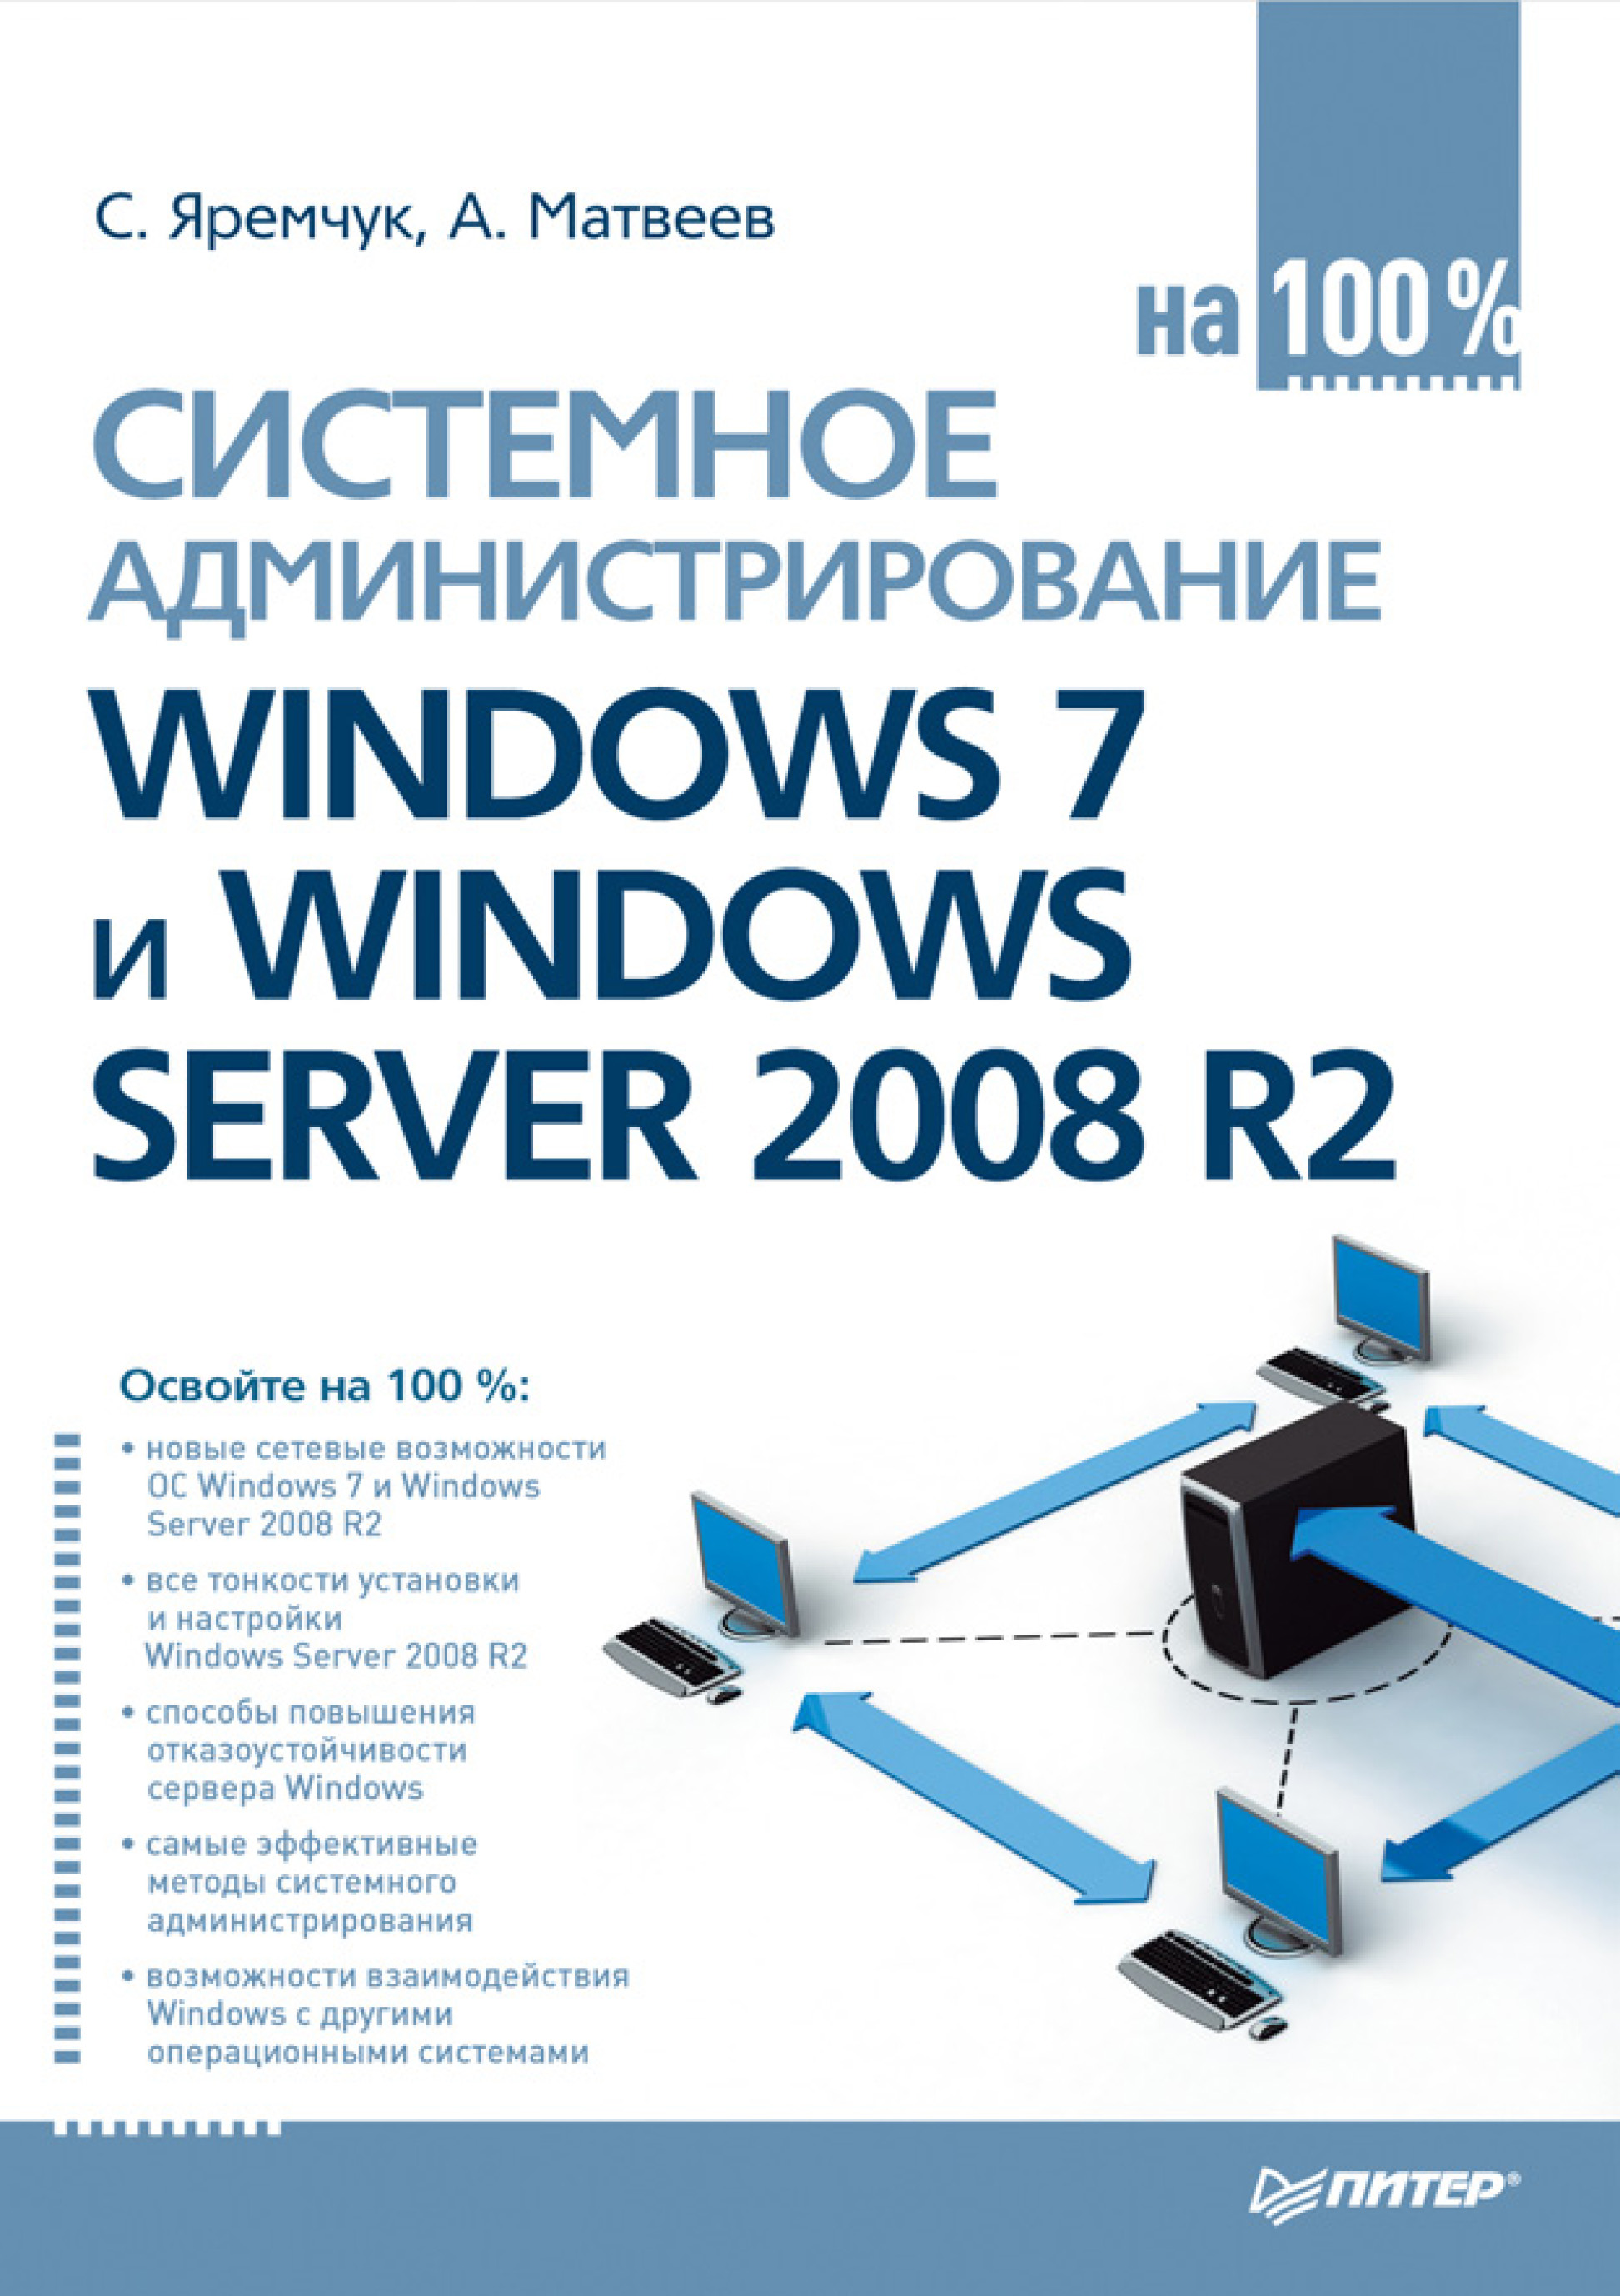 Сергей Яремчук Системное администрирование Windows 7 и Windows Server 2008 R2 на 100% william panek mcts windows server 2008 active directory configuration study guide exam 70 640